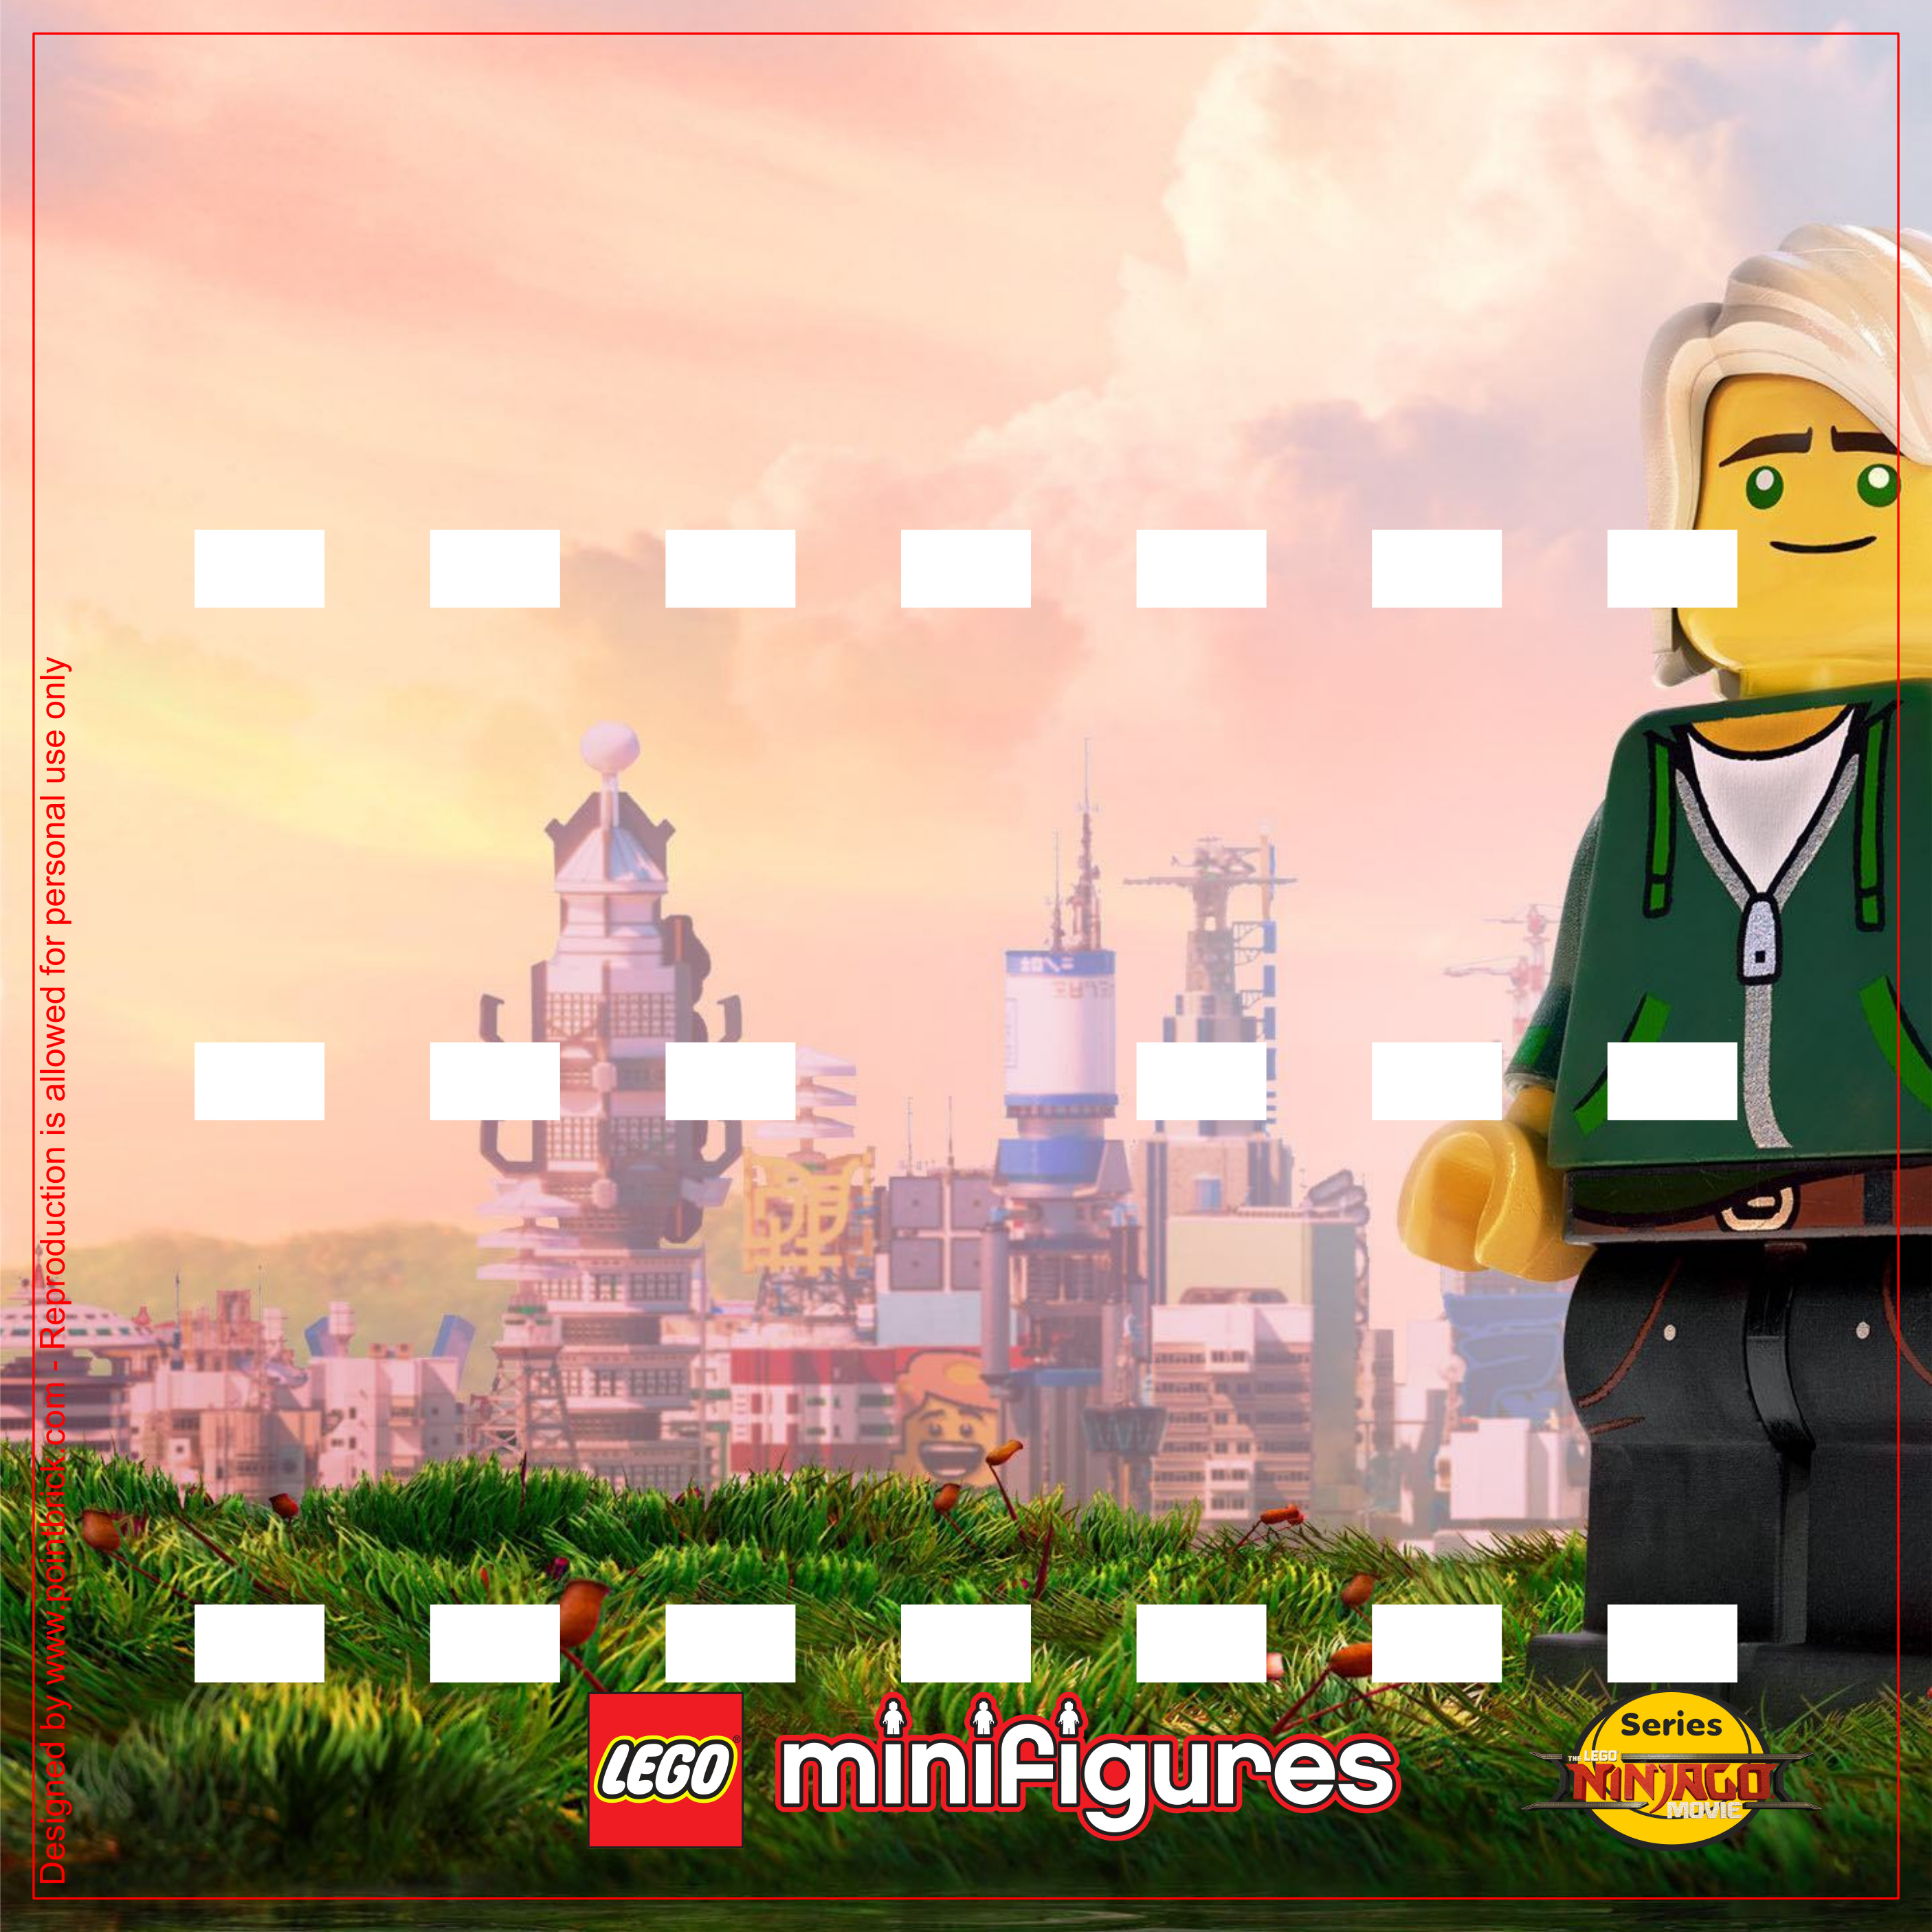 LEGO Minifigures 71019 The LEGO Ninjago Movie - Display Frame Background 230mm - Clicca sull'immagine per scaricarla gratuitamente!